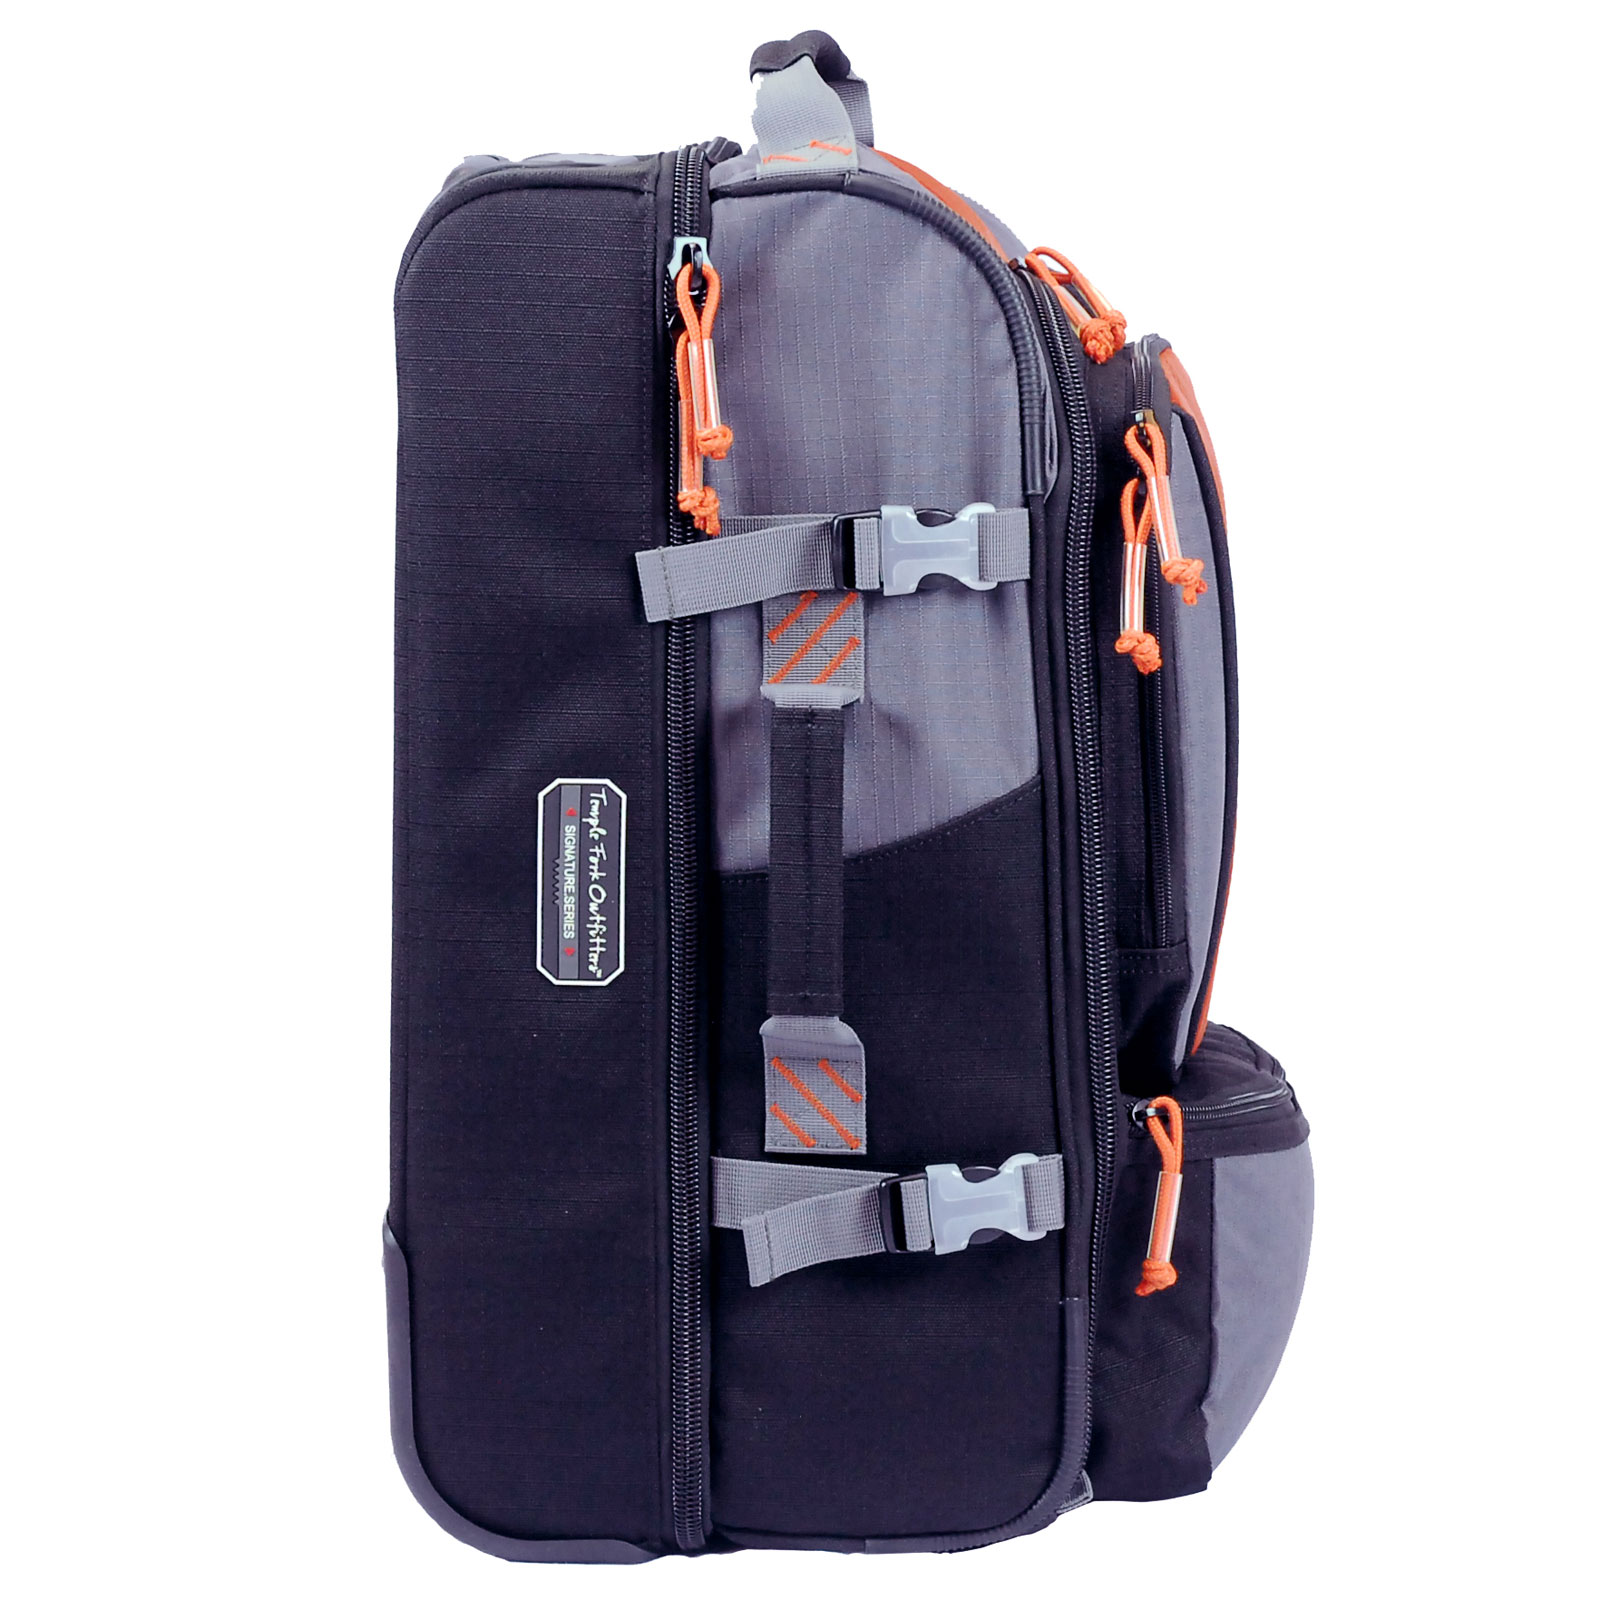 Tfo rolling carry on bag fly fishing durable wheeled for Fly fishing luggage